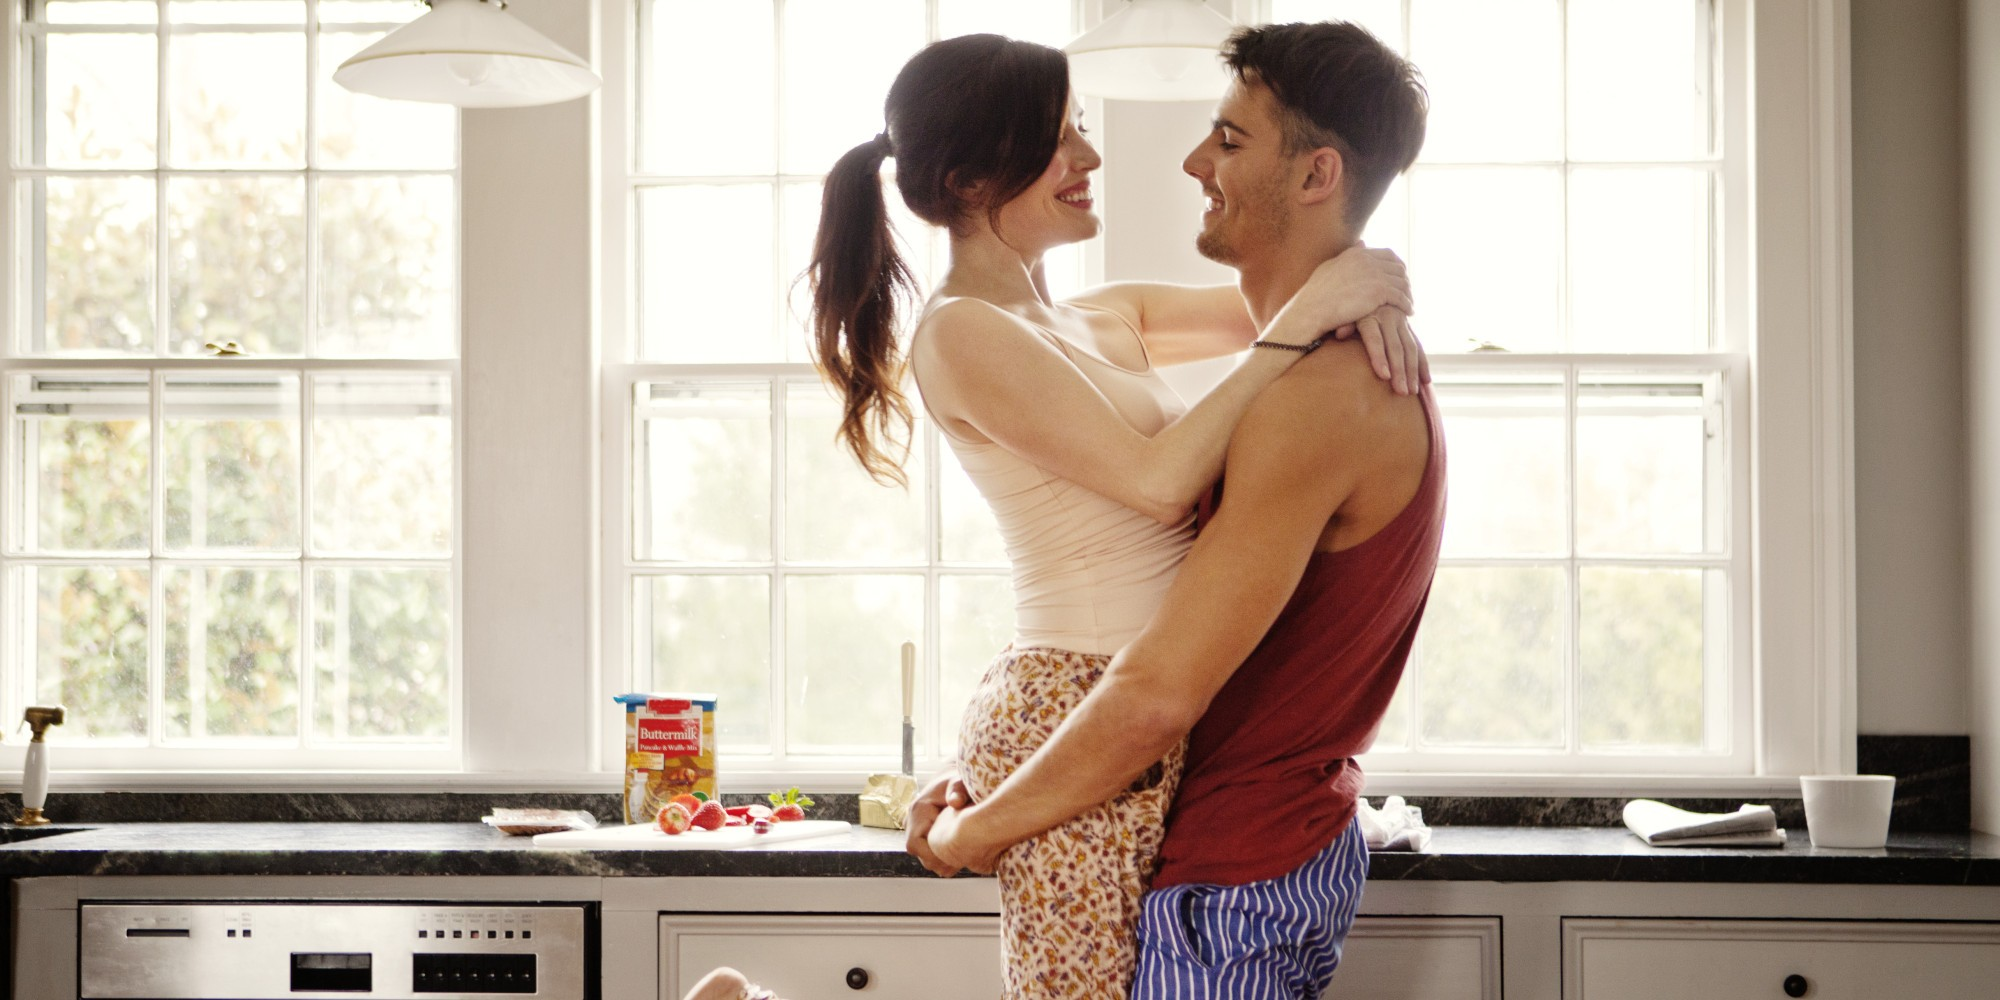 enjoy-romance-in-kitchens-wallpapers